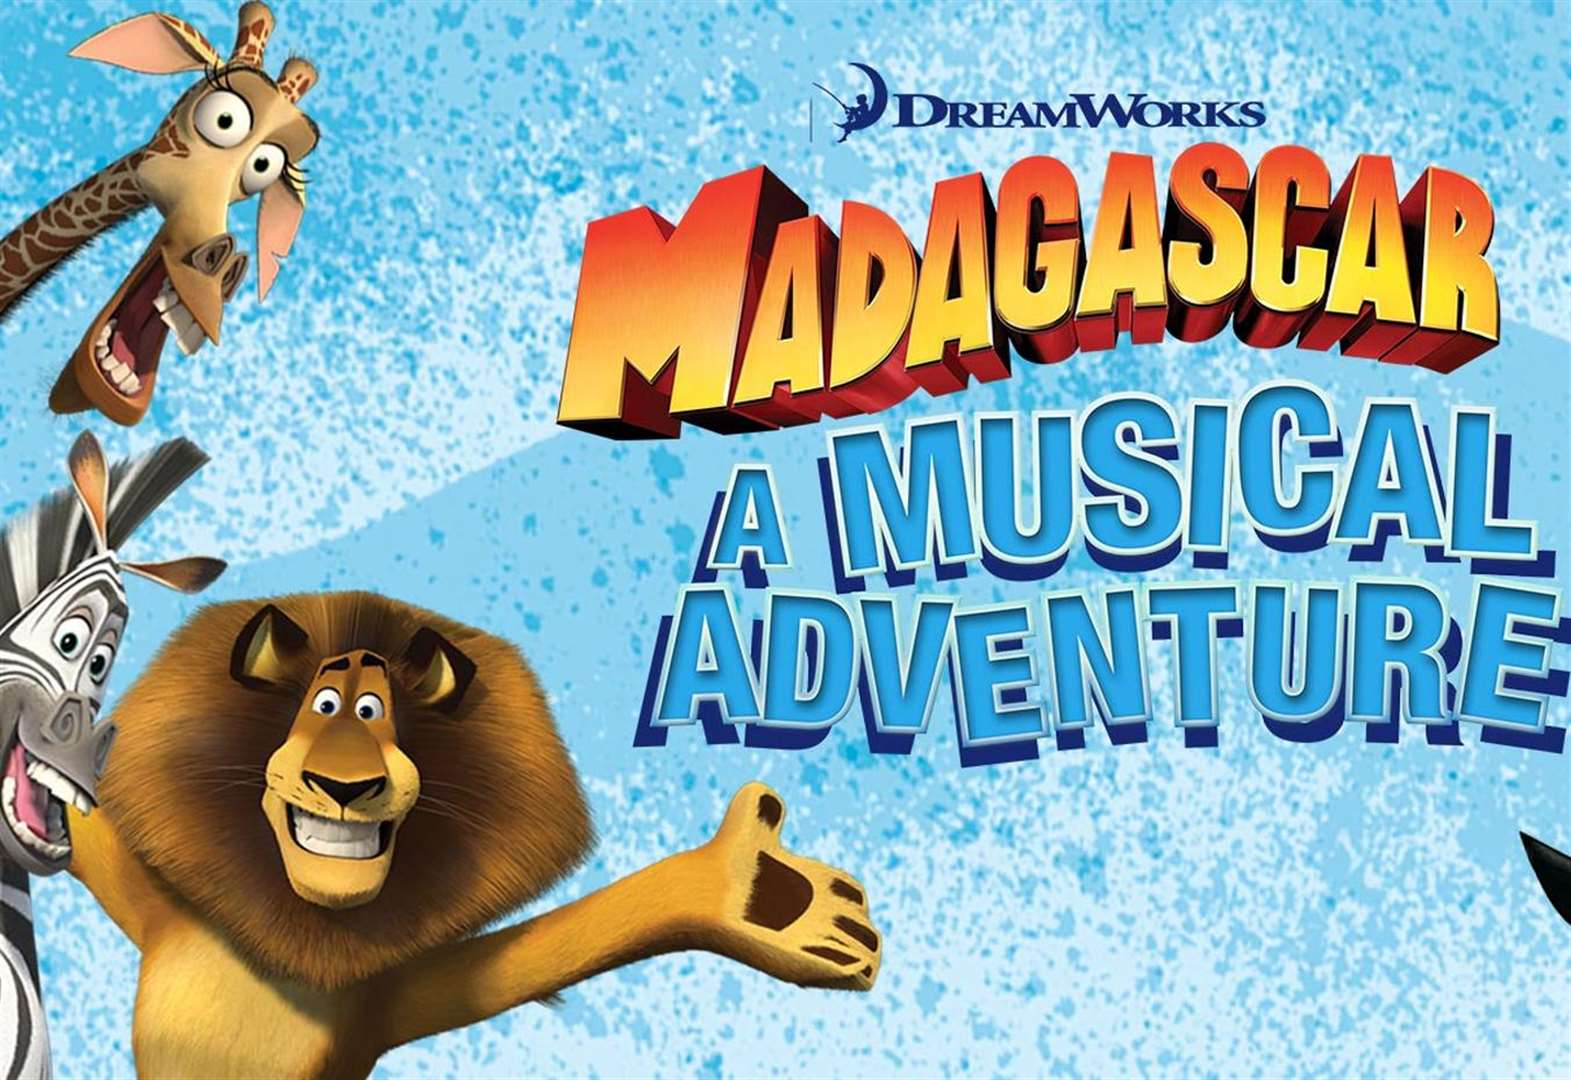 Madagascar's going to move it, move it